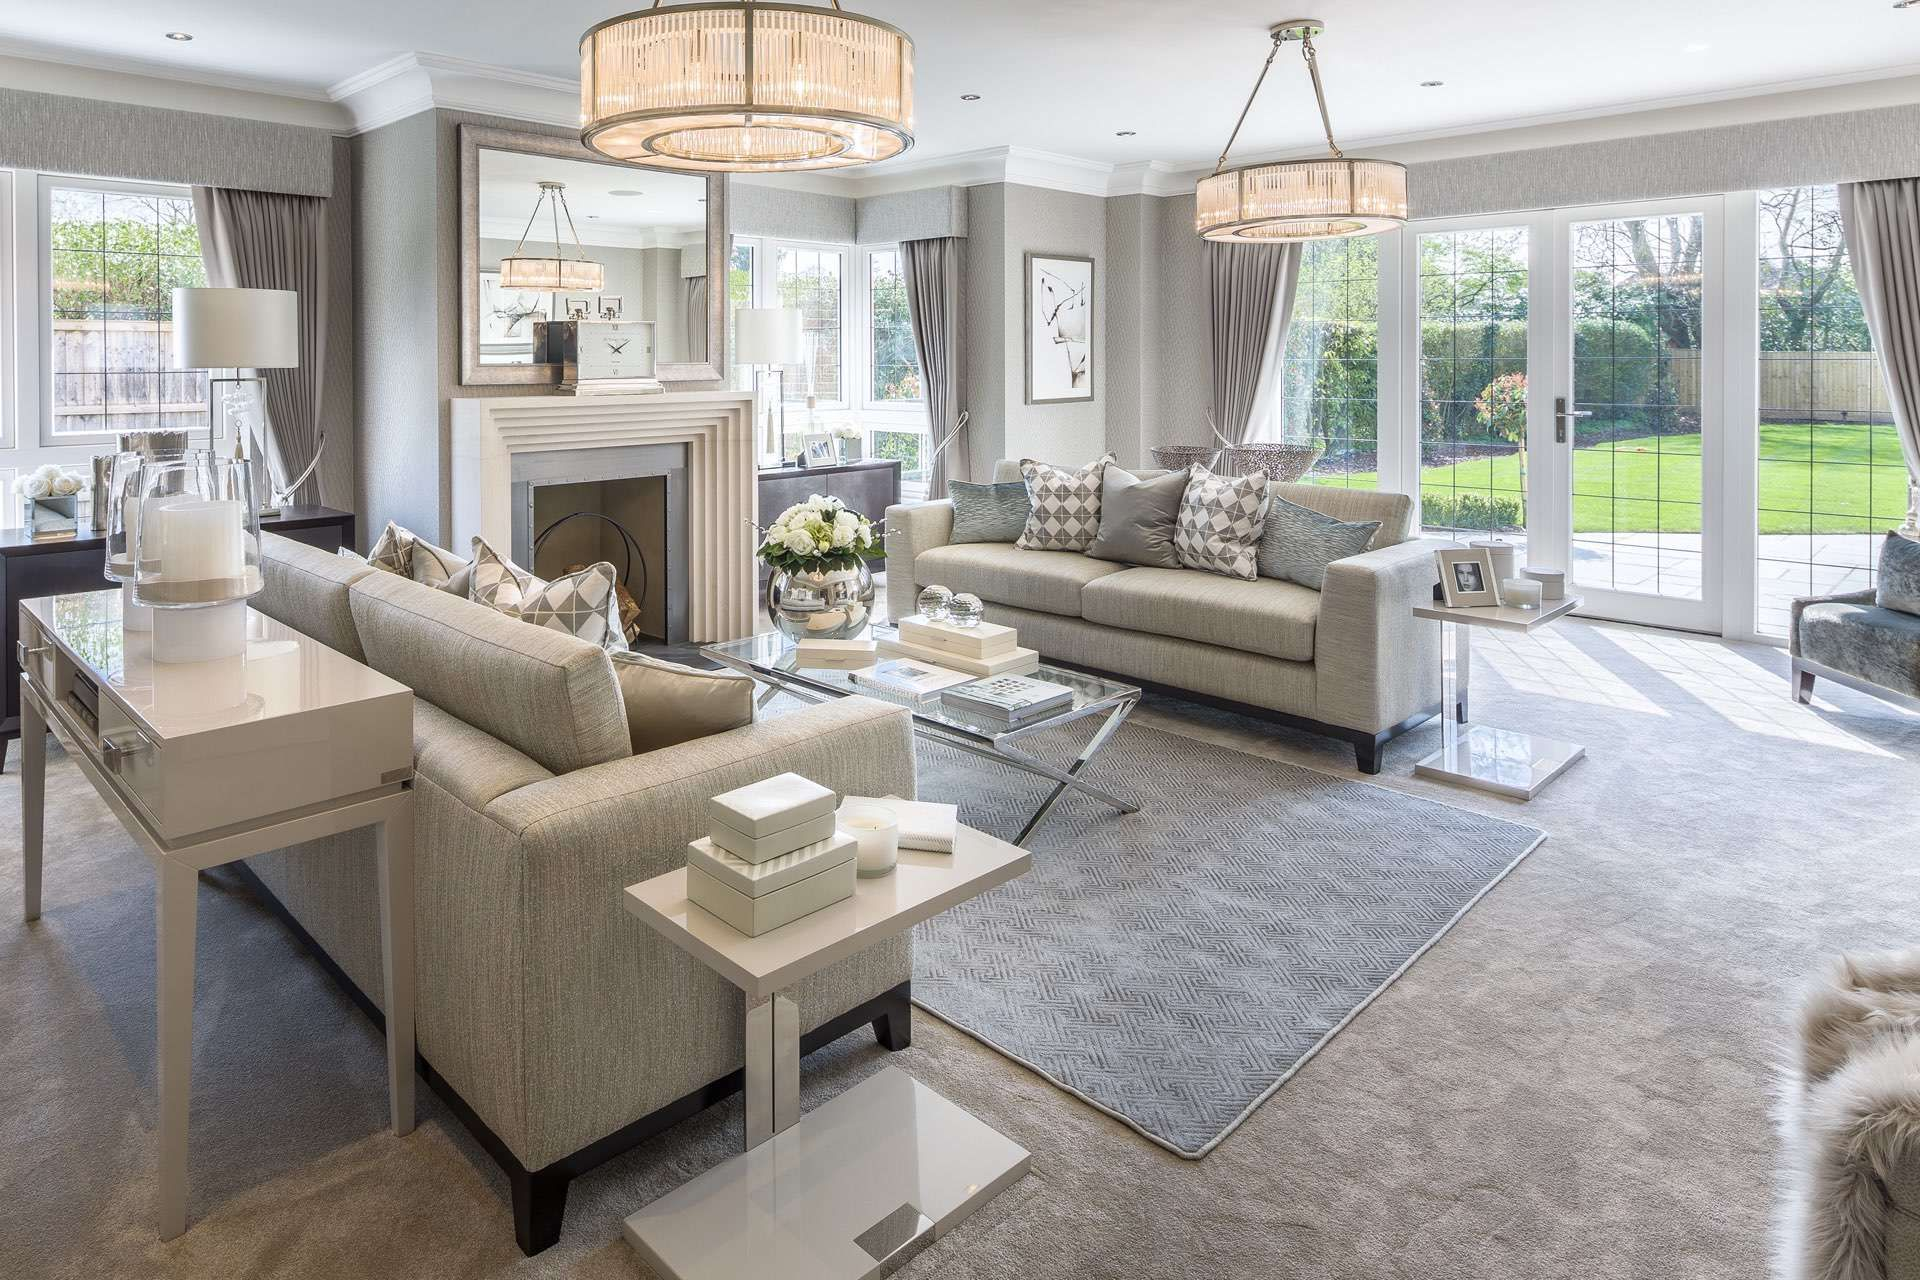 A luxurious welcoming and comfortable family home located in